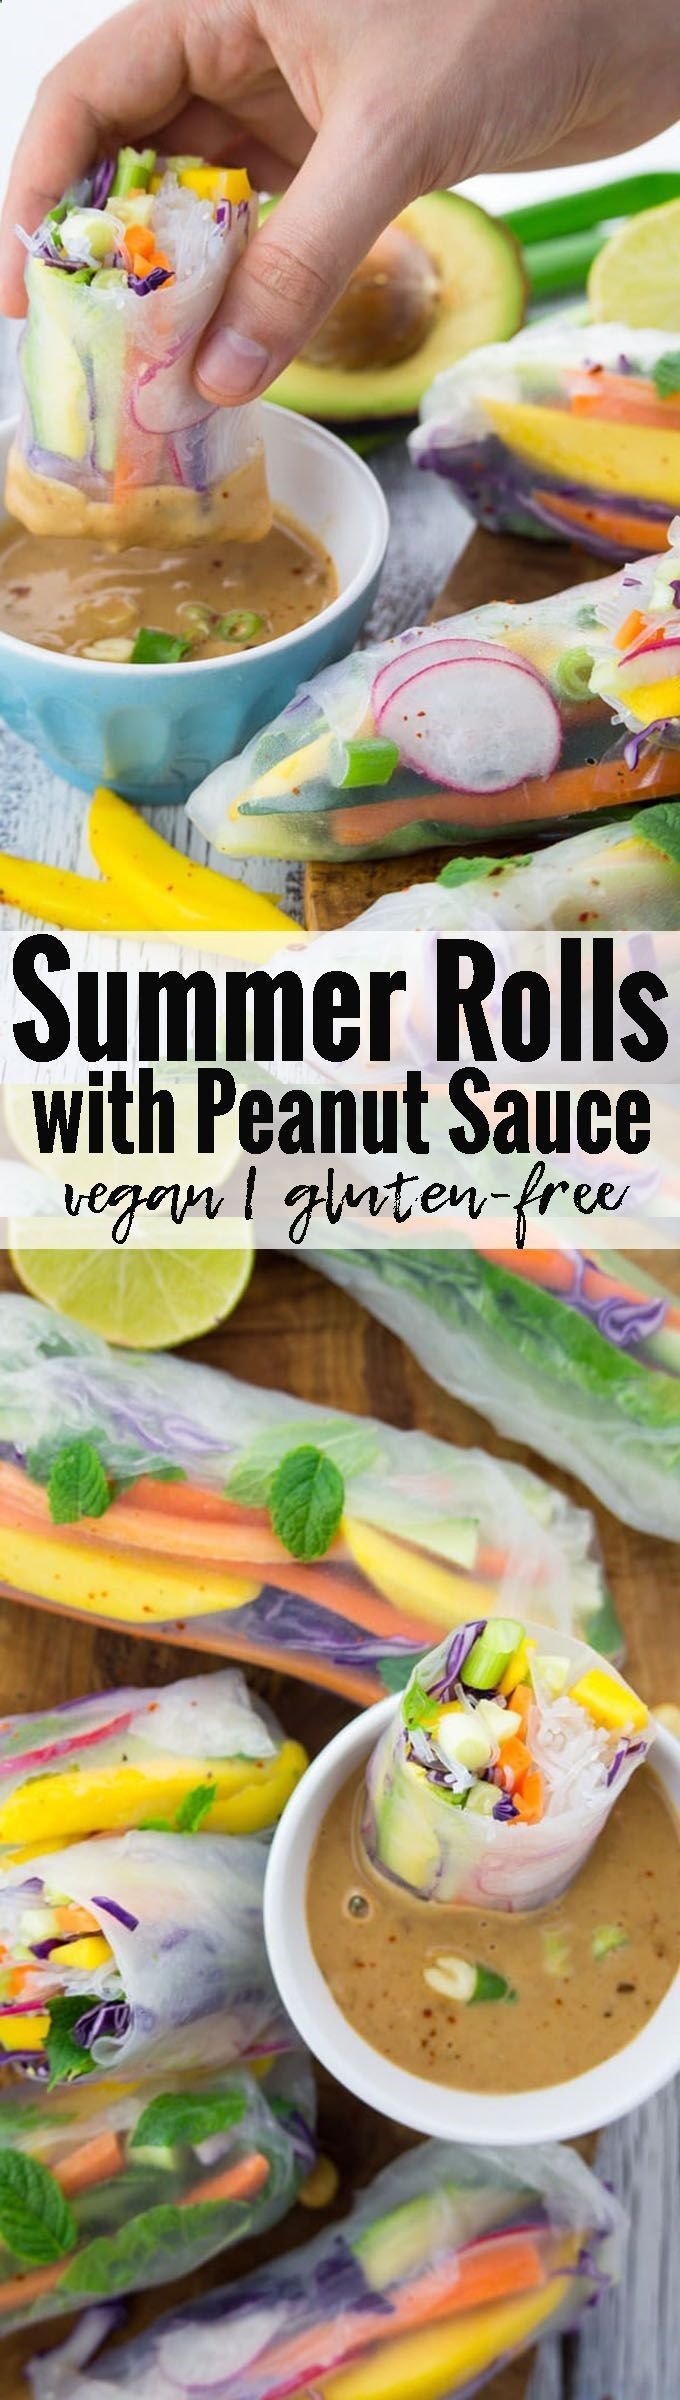 These vegan summer rolls with avocado, mango, and mint are such a delicious and healthy vegan dinner or lunch! I LOVE serving them with peanut sauce. So yummy! One of my all-time favorite vegan recipes! Discover The Joys Of Healthy Eating And Rebalance Your Appetite For Automated Fat Loss